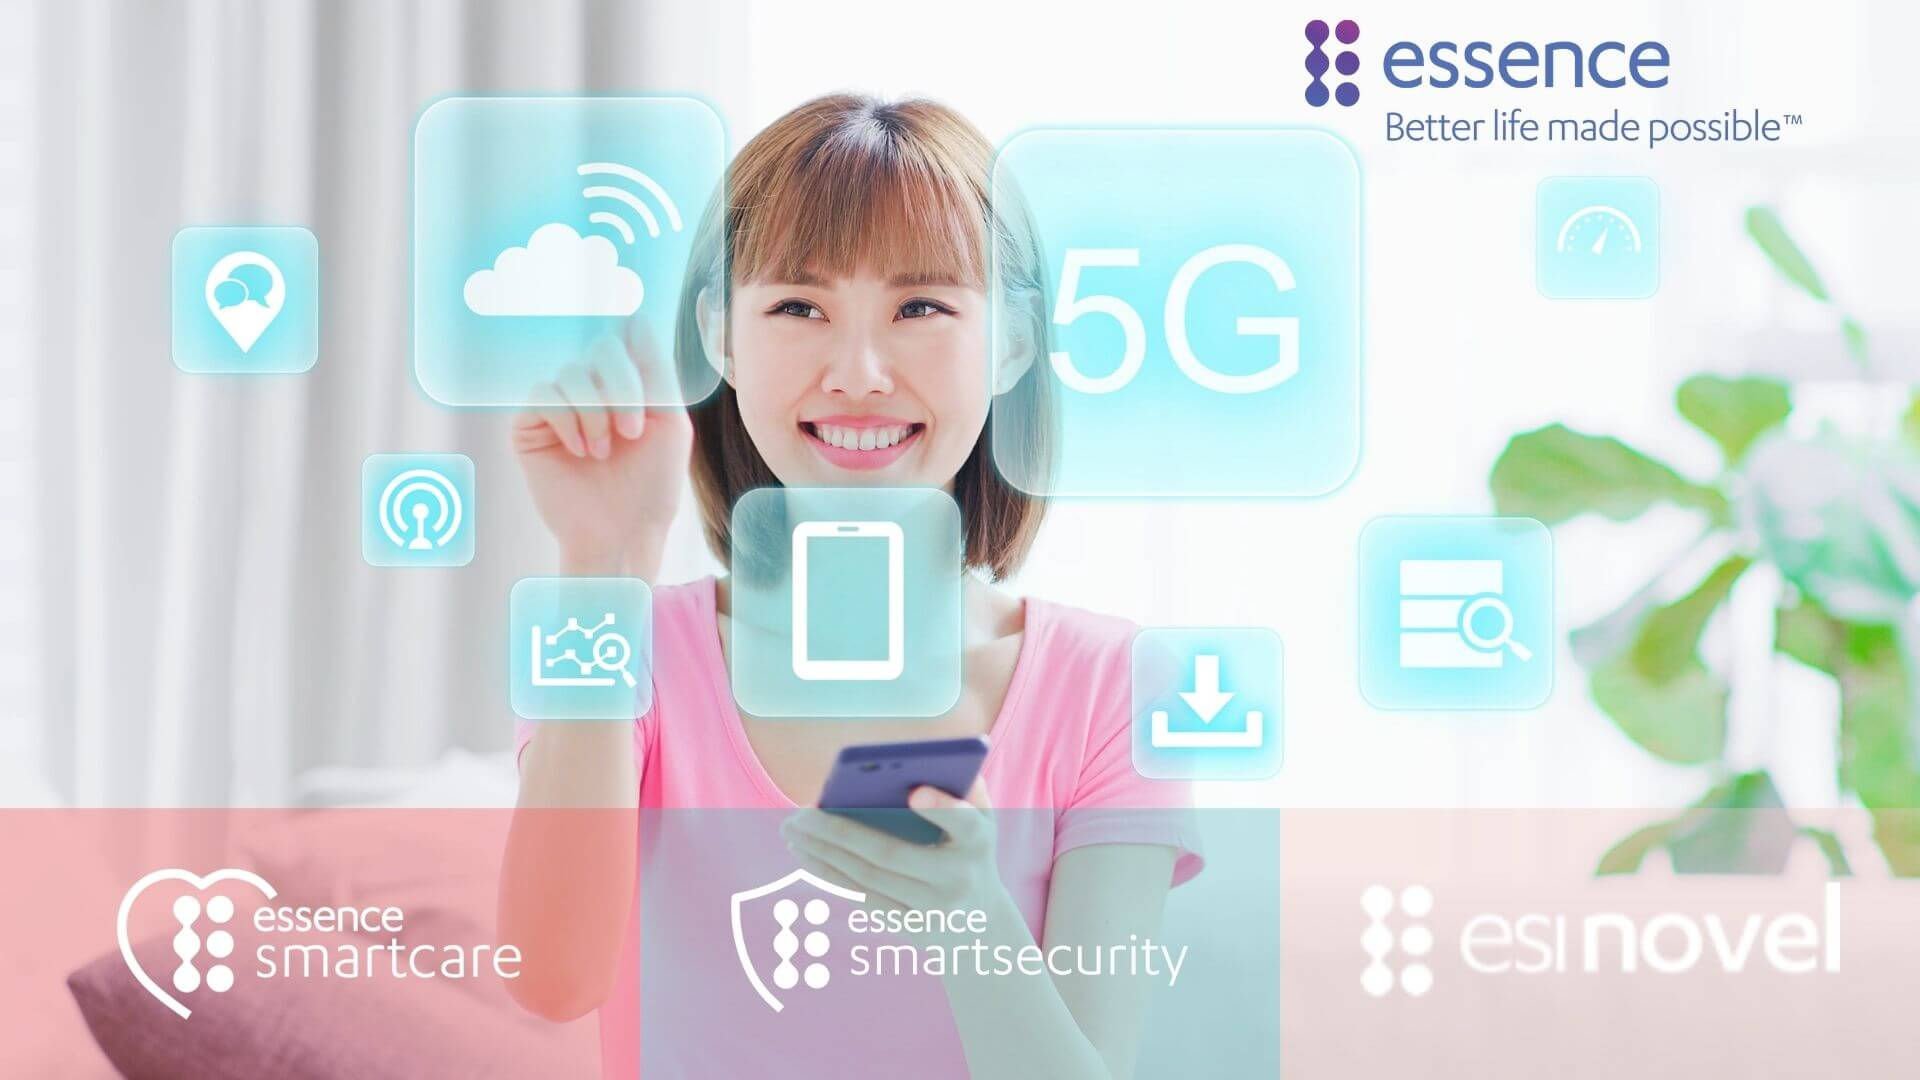 Essence group at CEs 2021